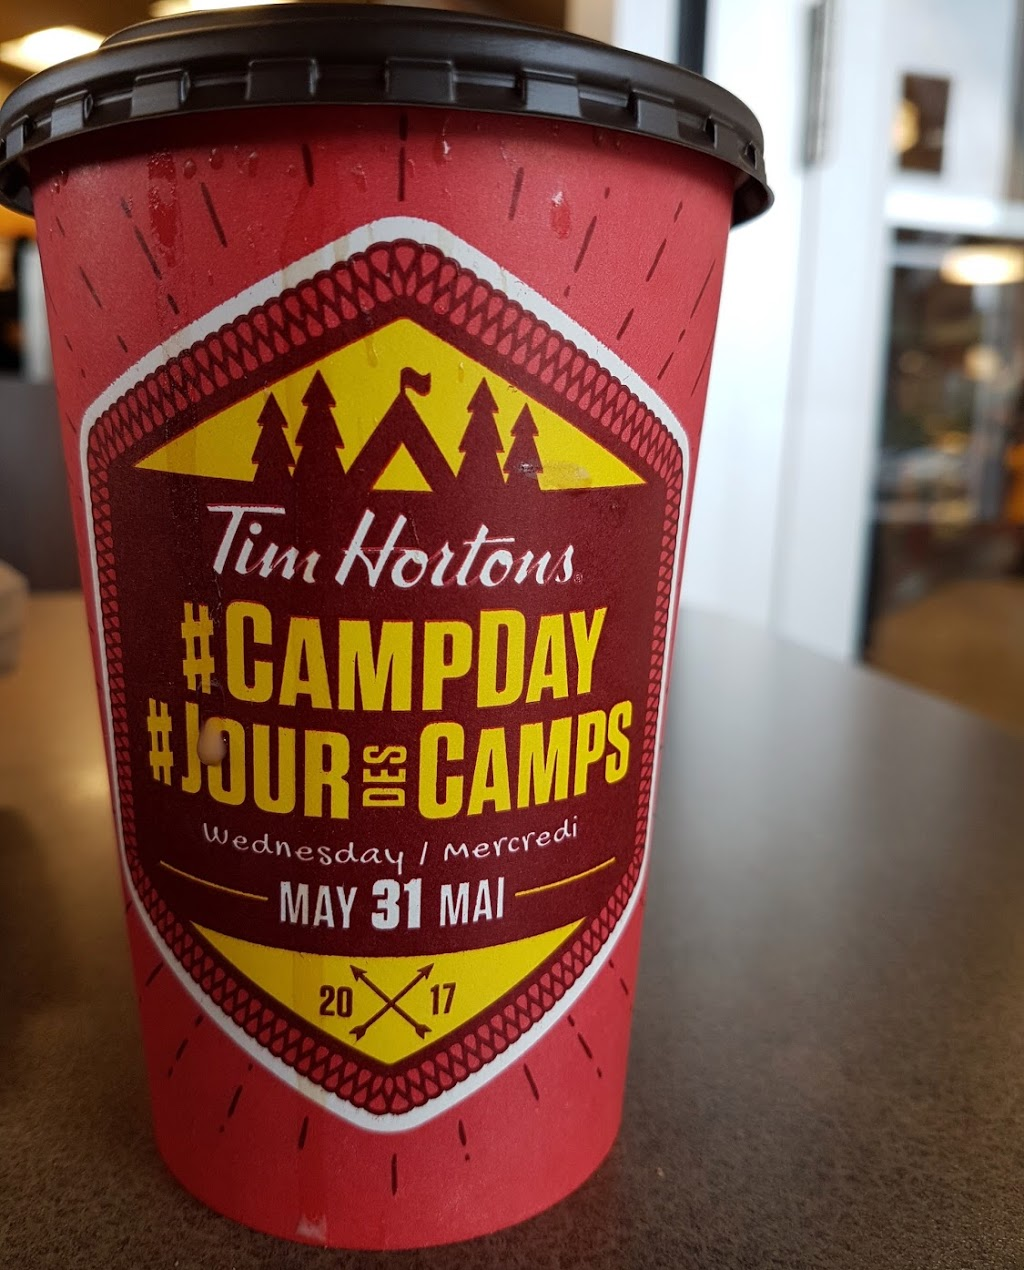 Tim Hortons | cafe | 1330 Taylor Ave, Winnipeg, MB R3M 3Y1, Canada | 2042840610 OR +1 204-284-0610